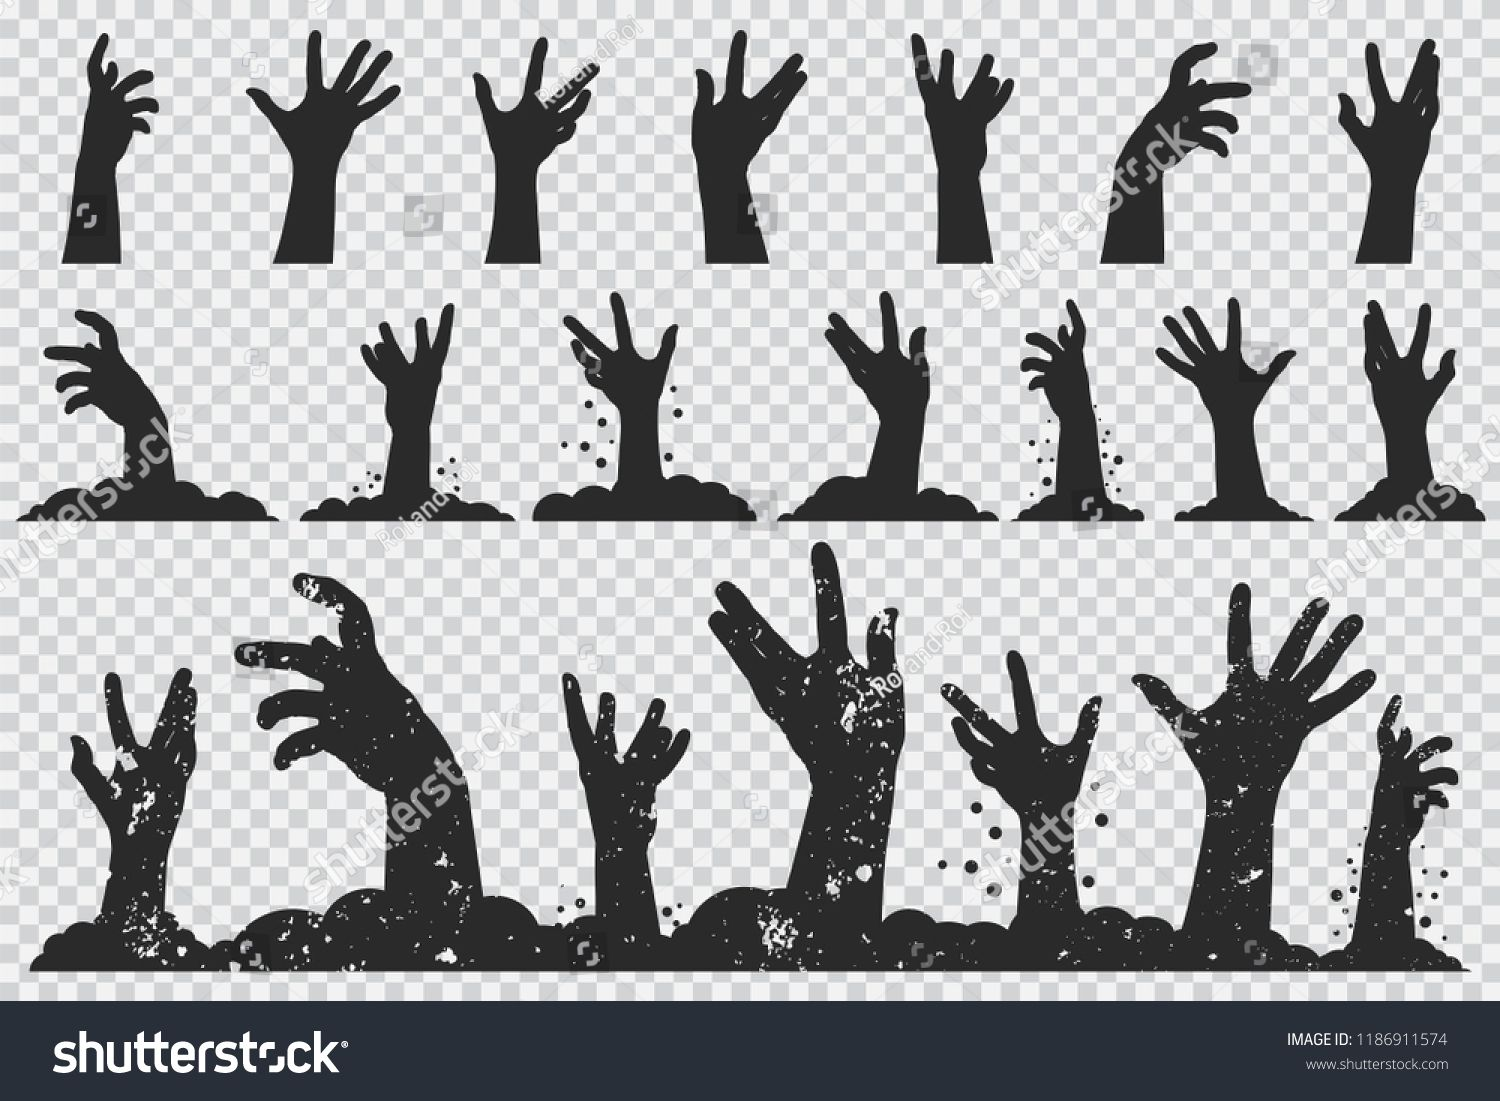 Zombie Hands Black Silhouette Vector Halloween Icons Set Isolated On A Transparent Background Sponsored Spon Zombie Hand Black Silhouette Halloween Icons